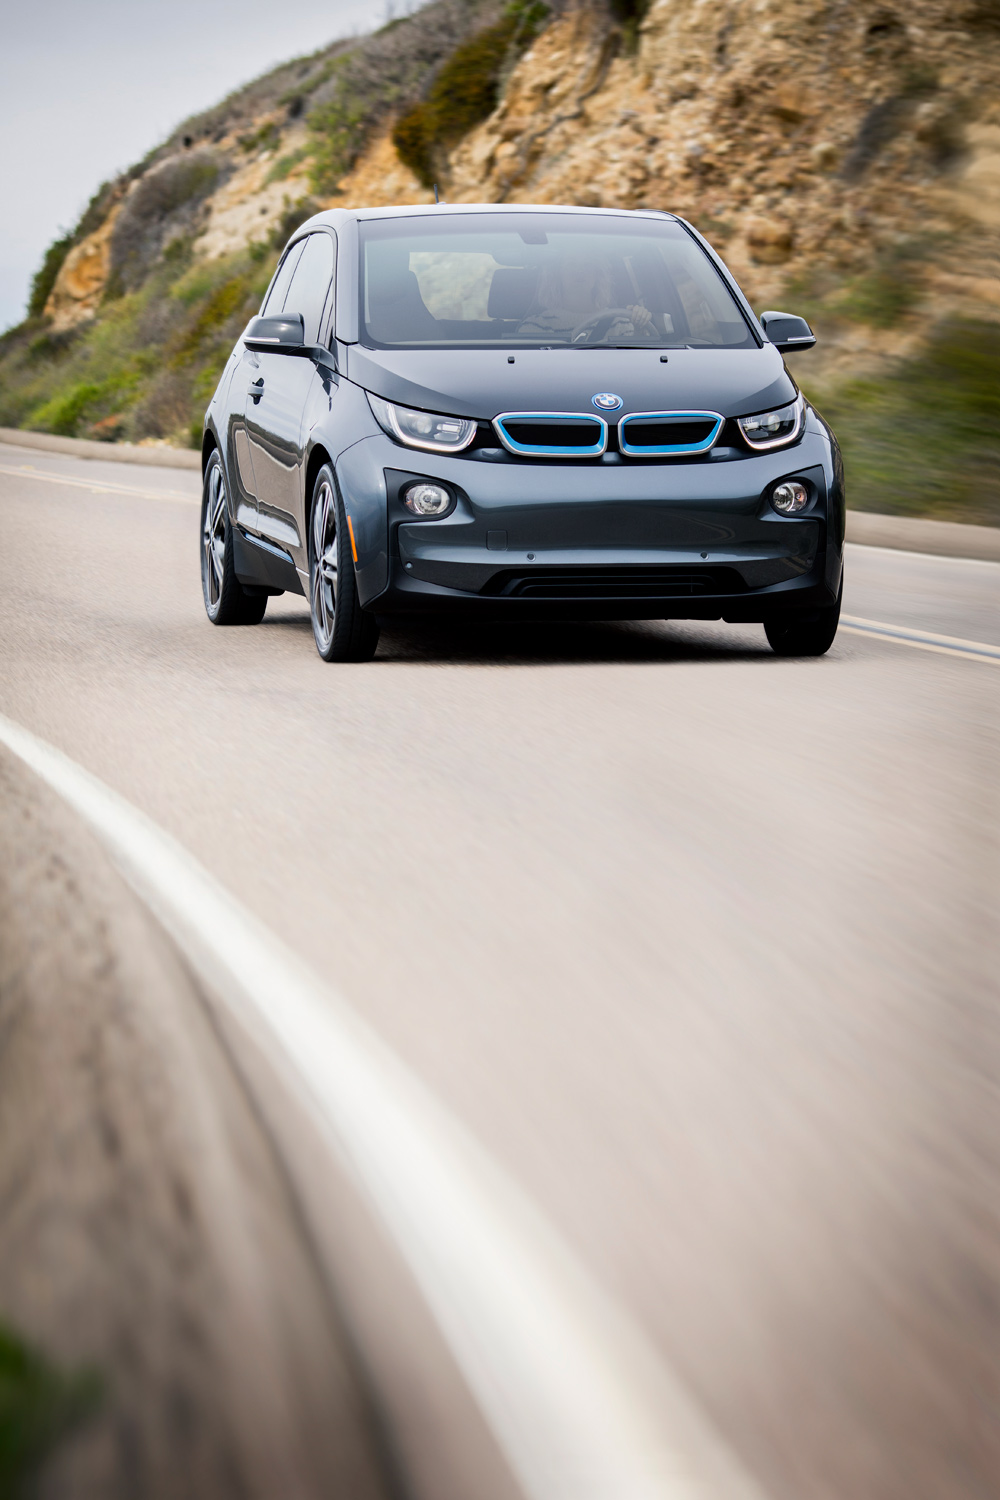 lou-mora-bmw-i3-automotive-lifestyle-001.jpg